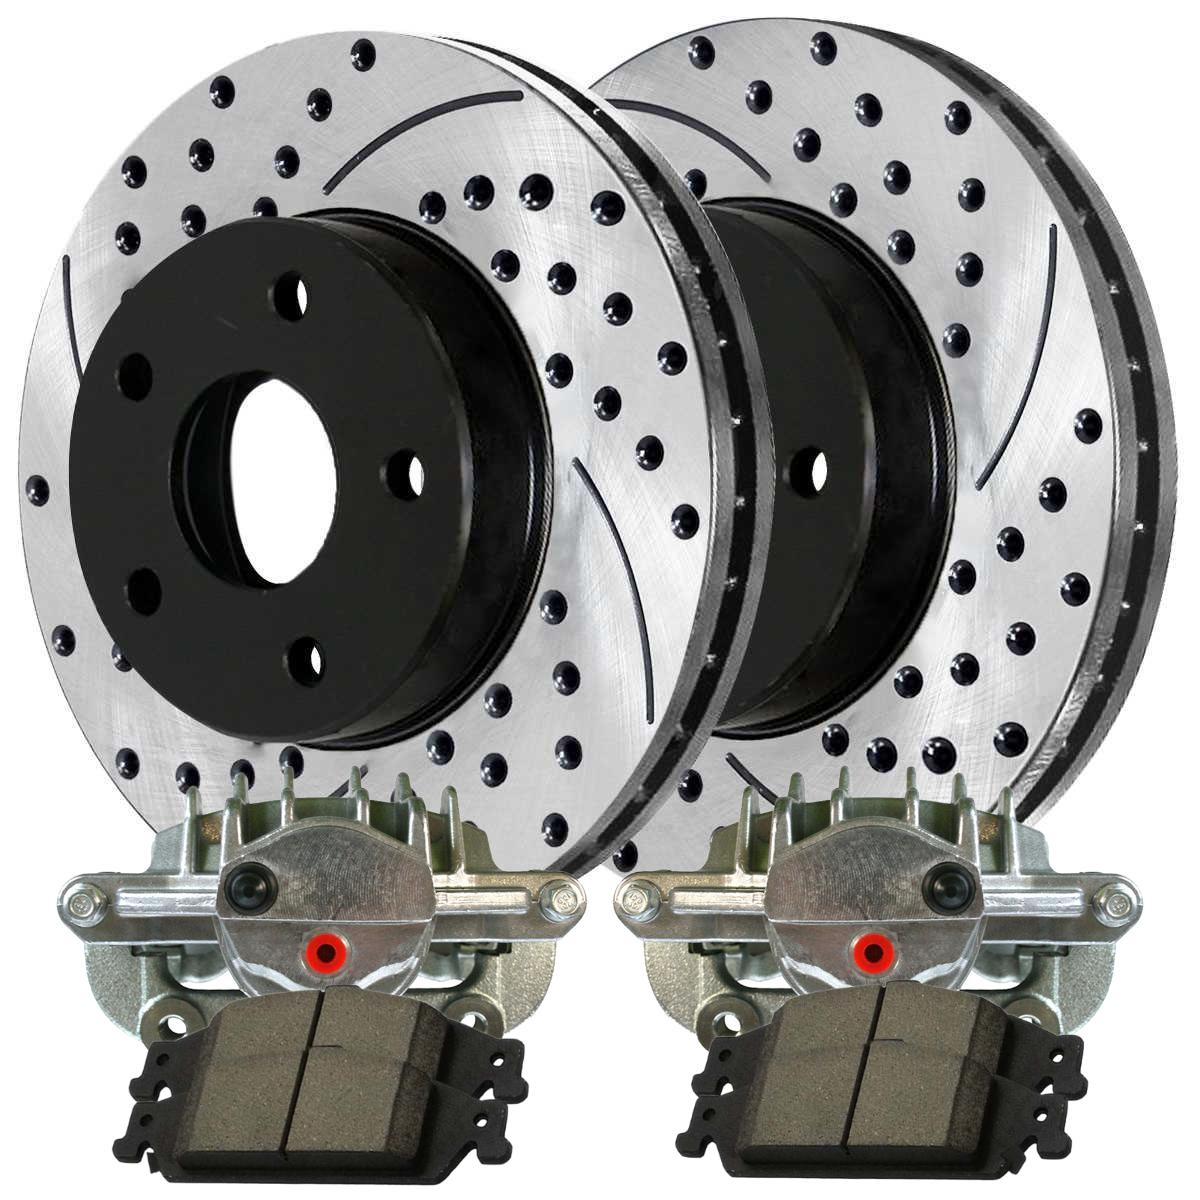 Prime Choice Auto Parts SRBRPKG00084 Front Performance Silver Rotors Calipers and Metallic pads Set